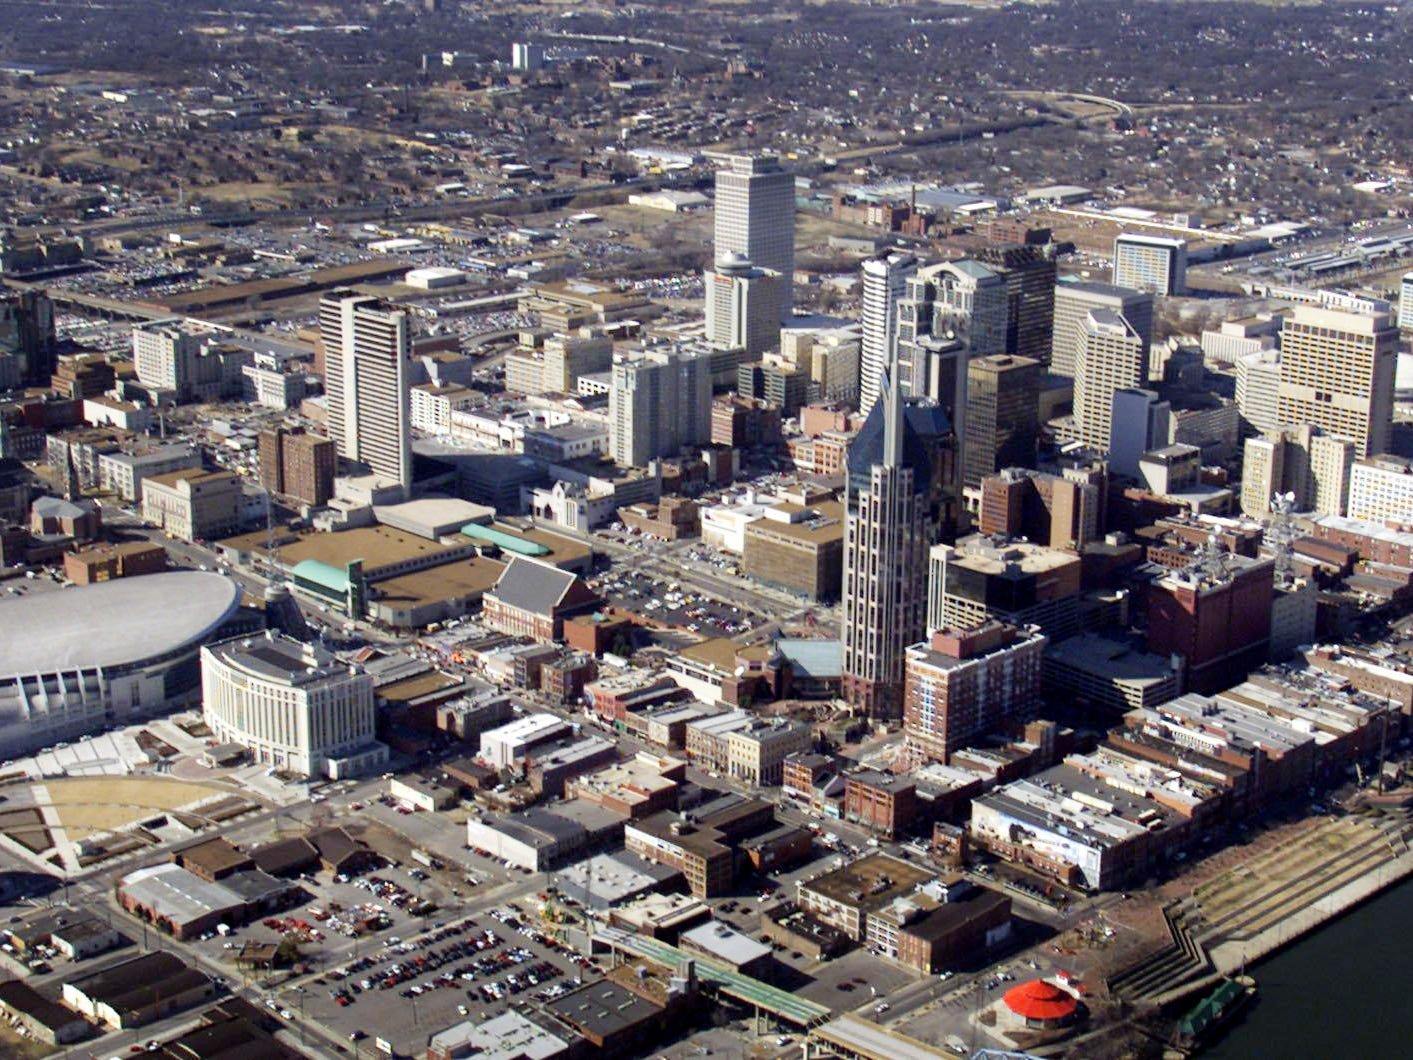 An aerial view of downtown Nashville on Feb. 6, 2001.